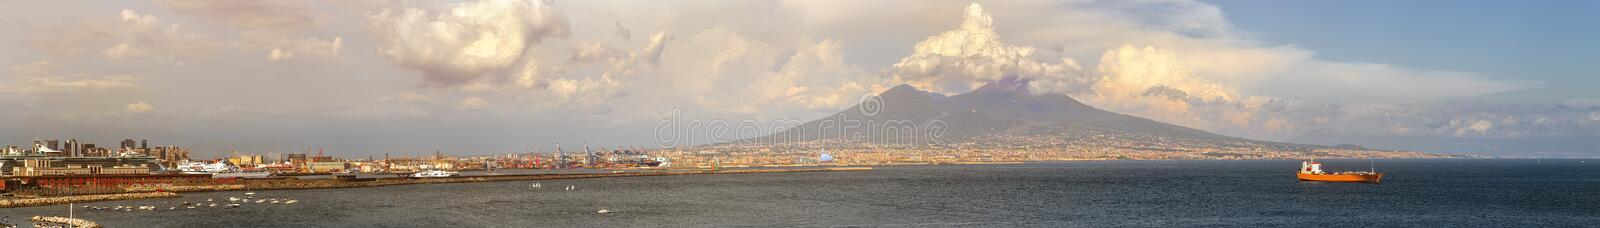 Napoli and mount Vesuvius at sunset in a summer day stock photos